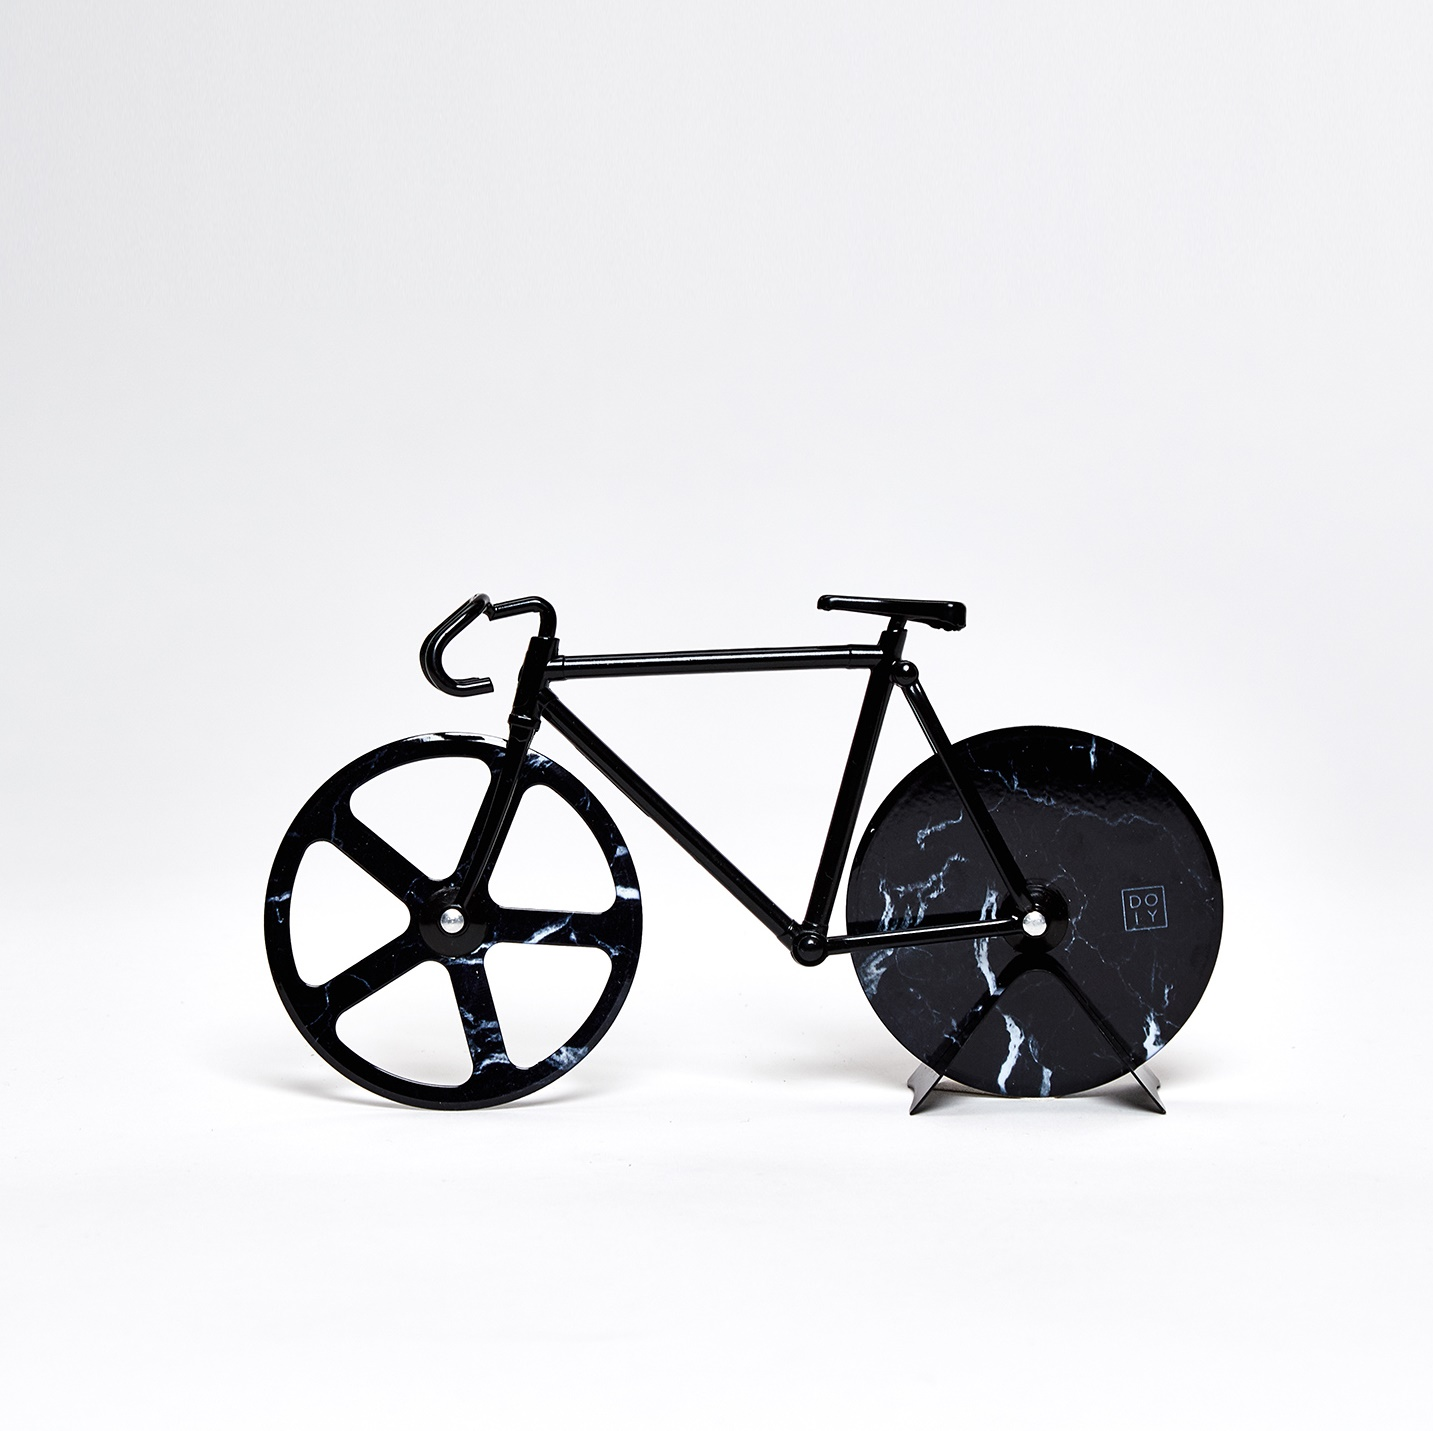 Fixie pizzasnijder marble black